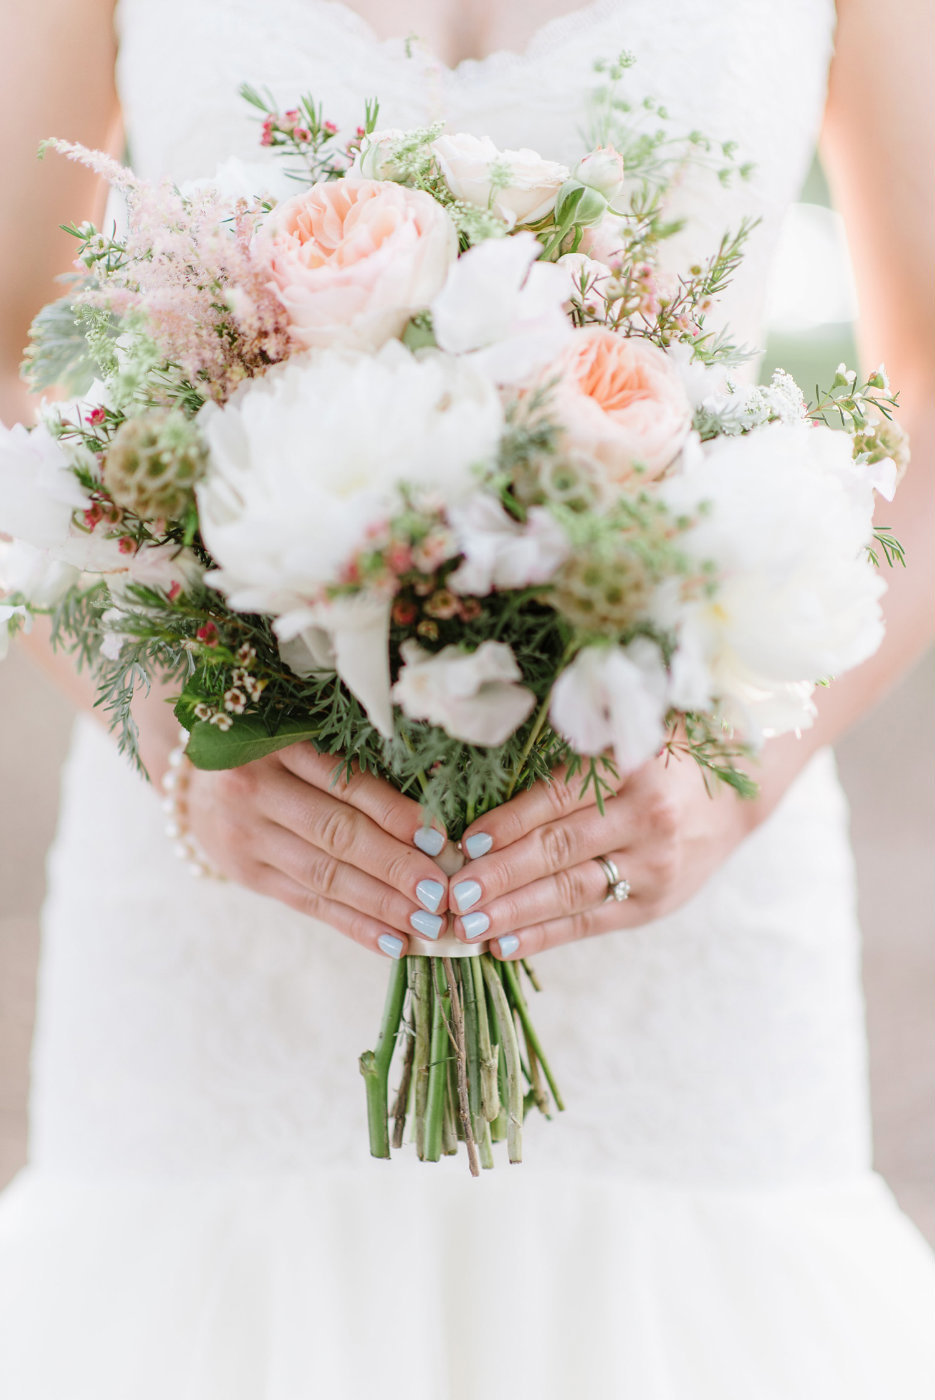 charleston_wedding_photographer___becky_williamson_photography___carolinas_wedding_photographer_178